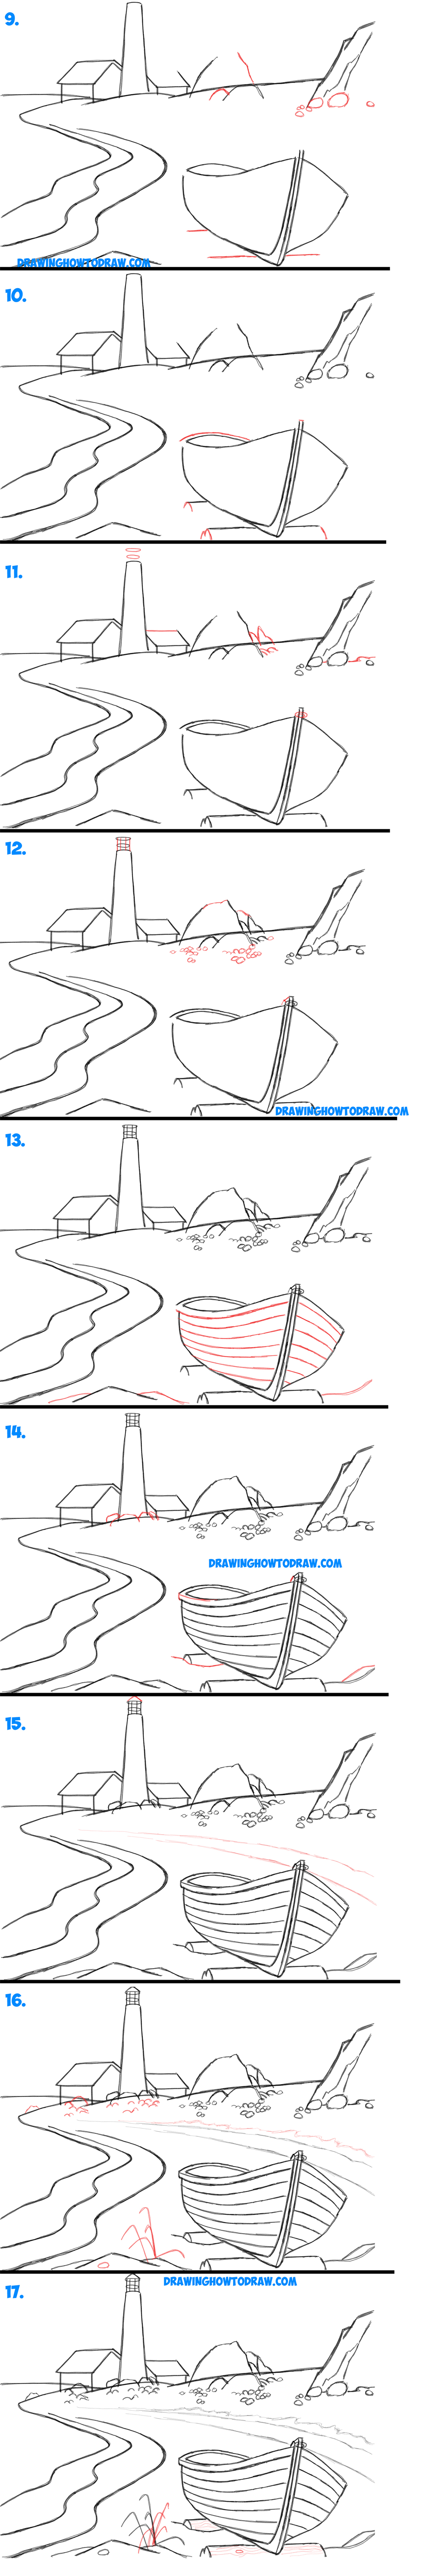 Learn How to Draw a Lighthouse by the Ocean in Easy Steps Drawing Lesson for Beginners and Kids